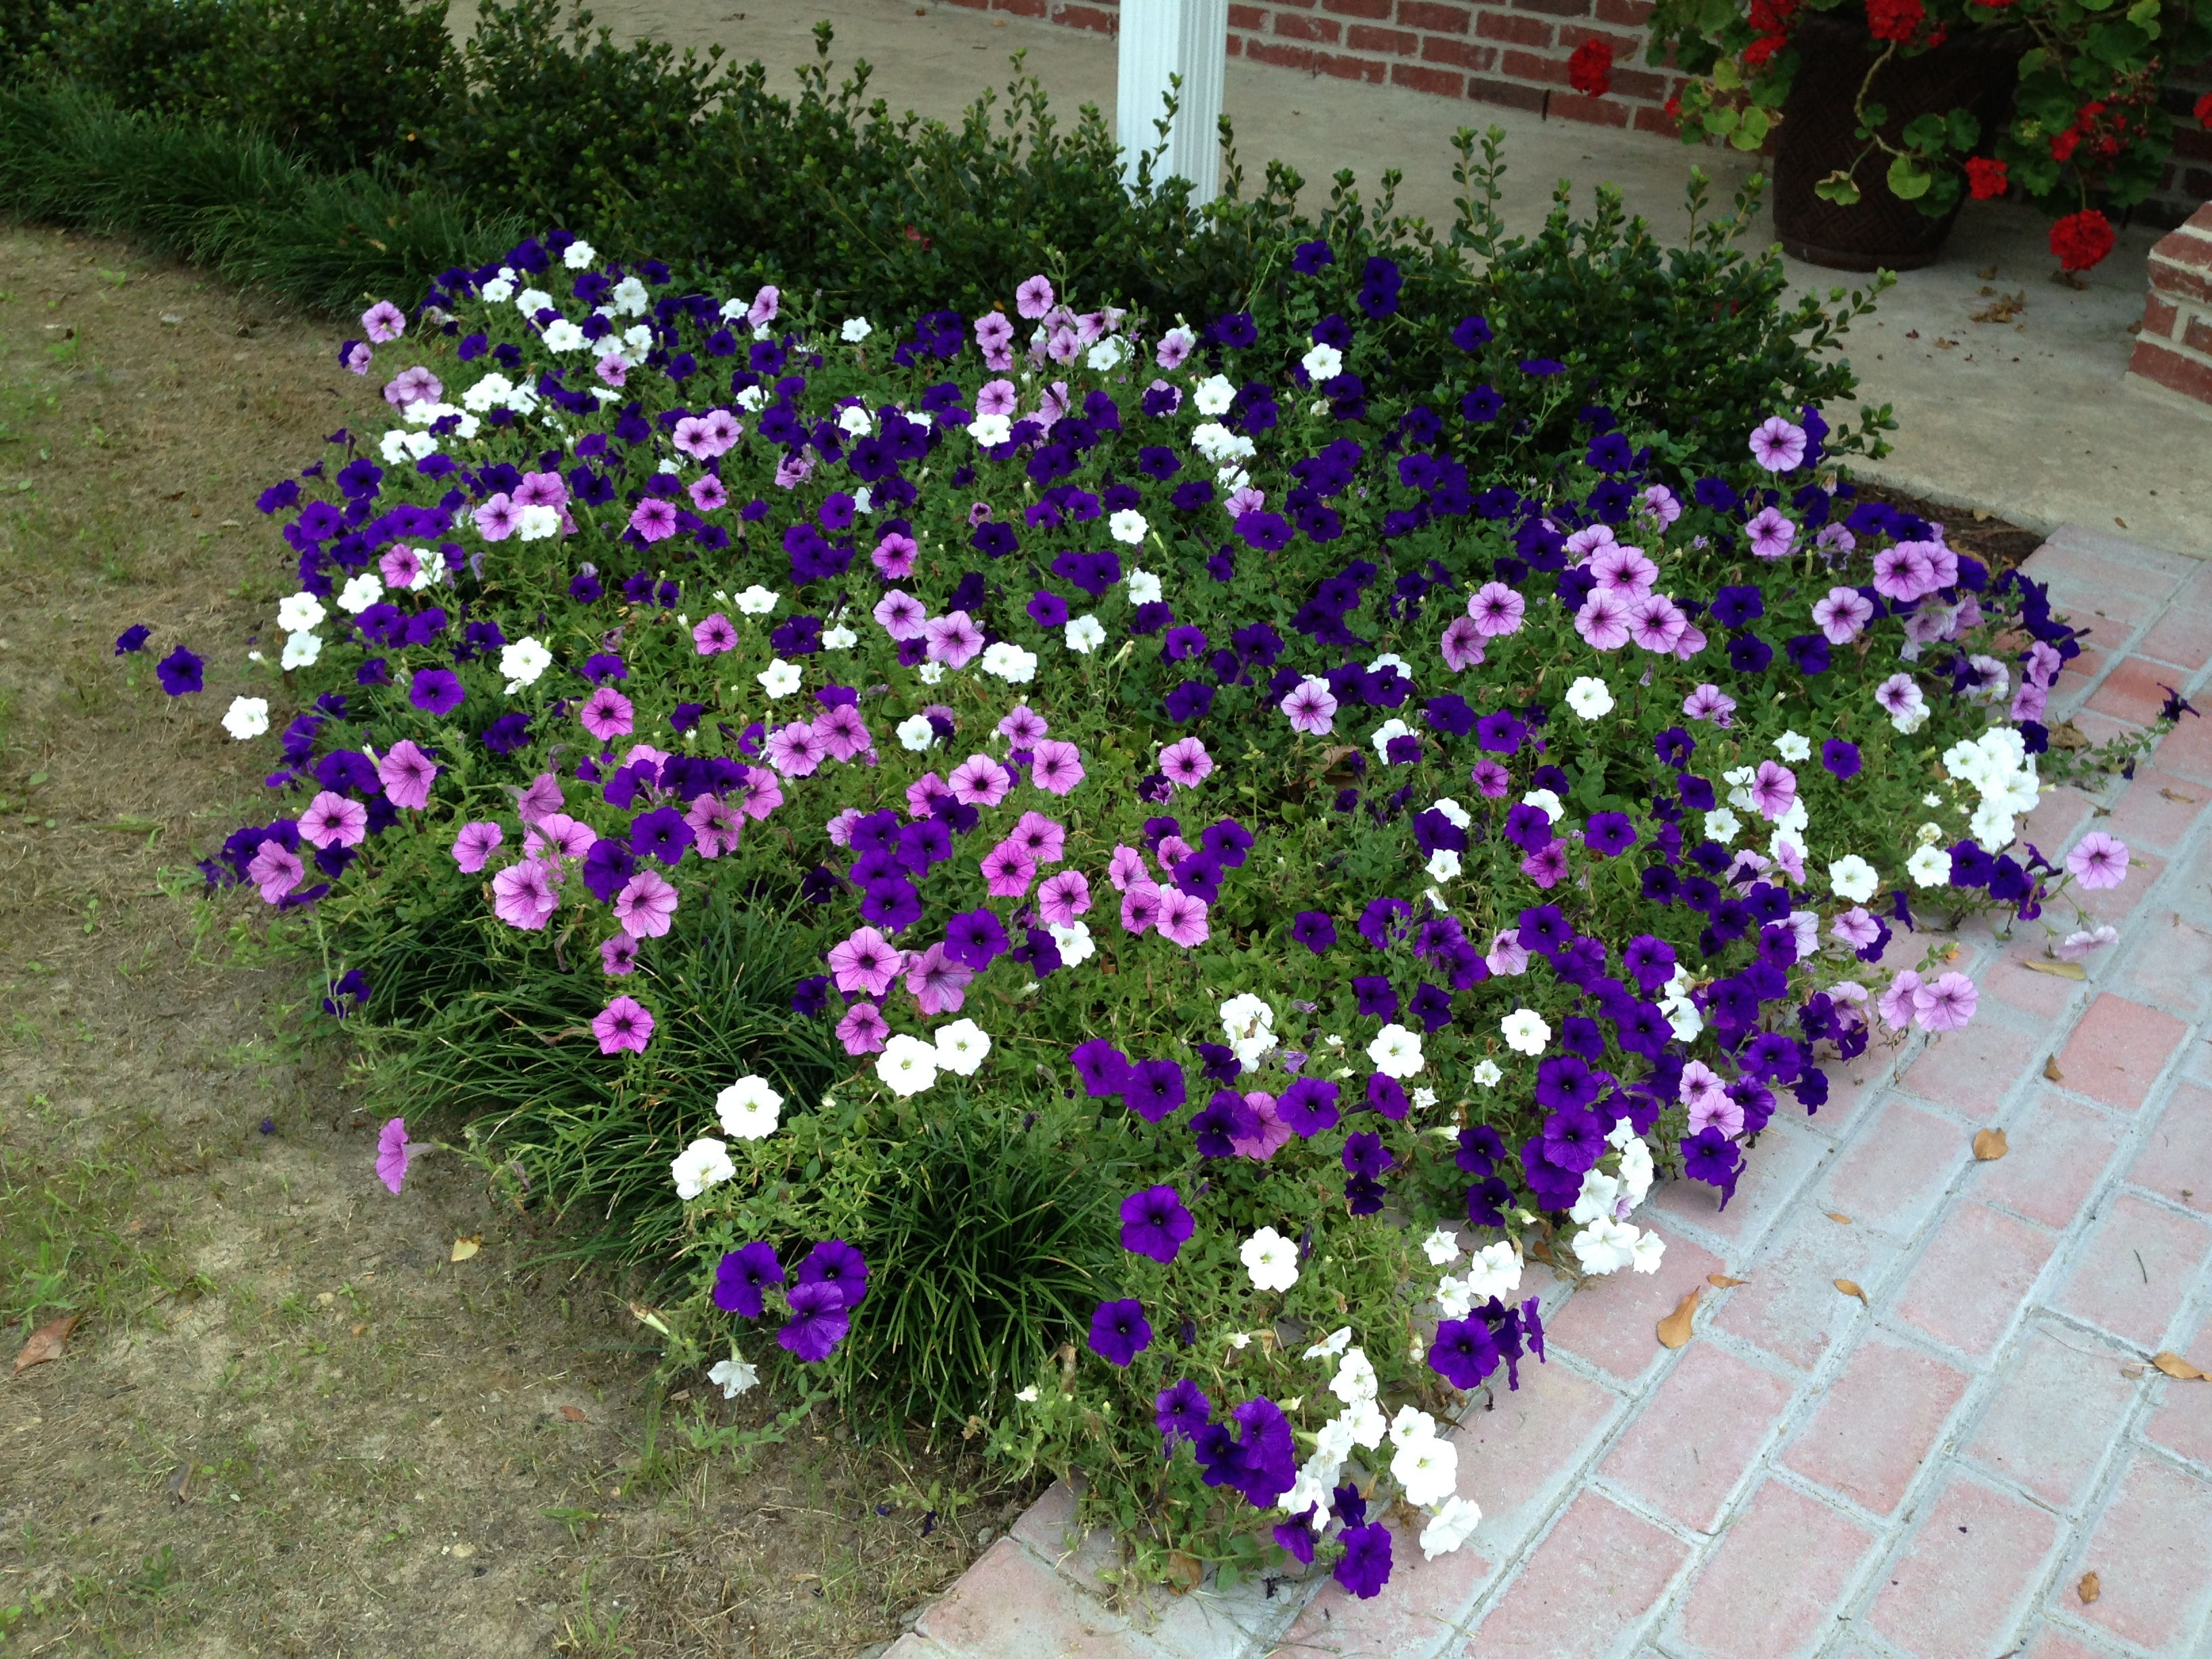 Pin By Rhonda Kirl On Our Happy Home Diy Landscaping Flower Beds Flowers